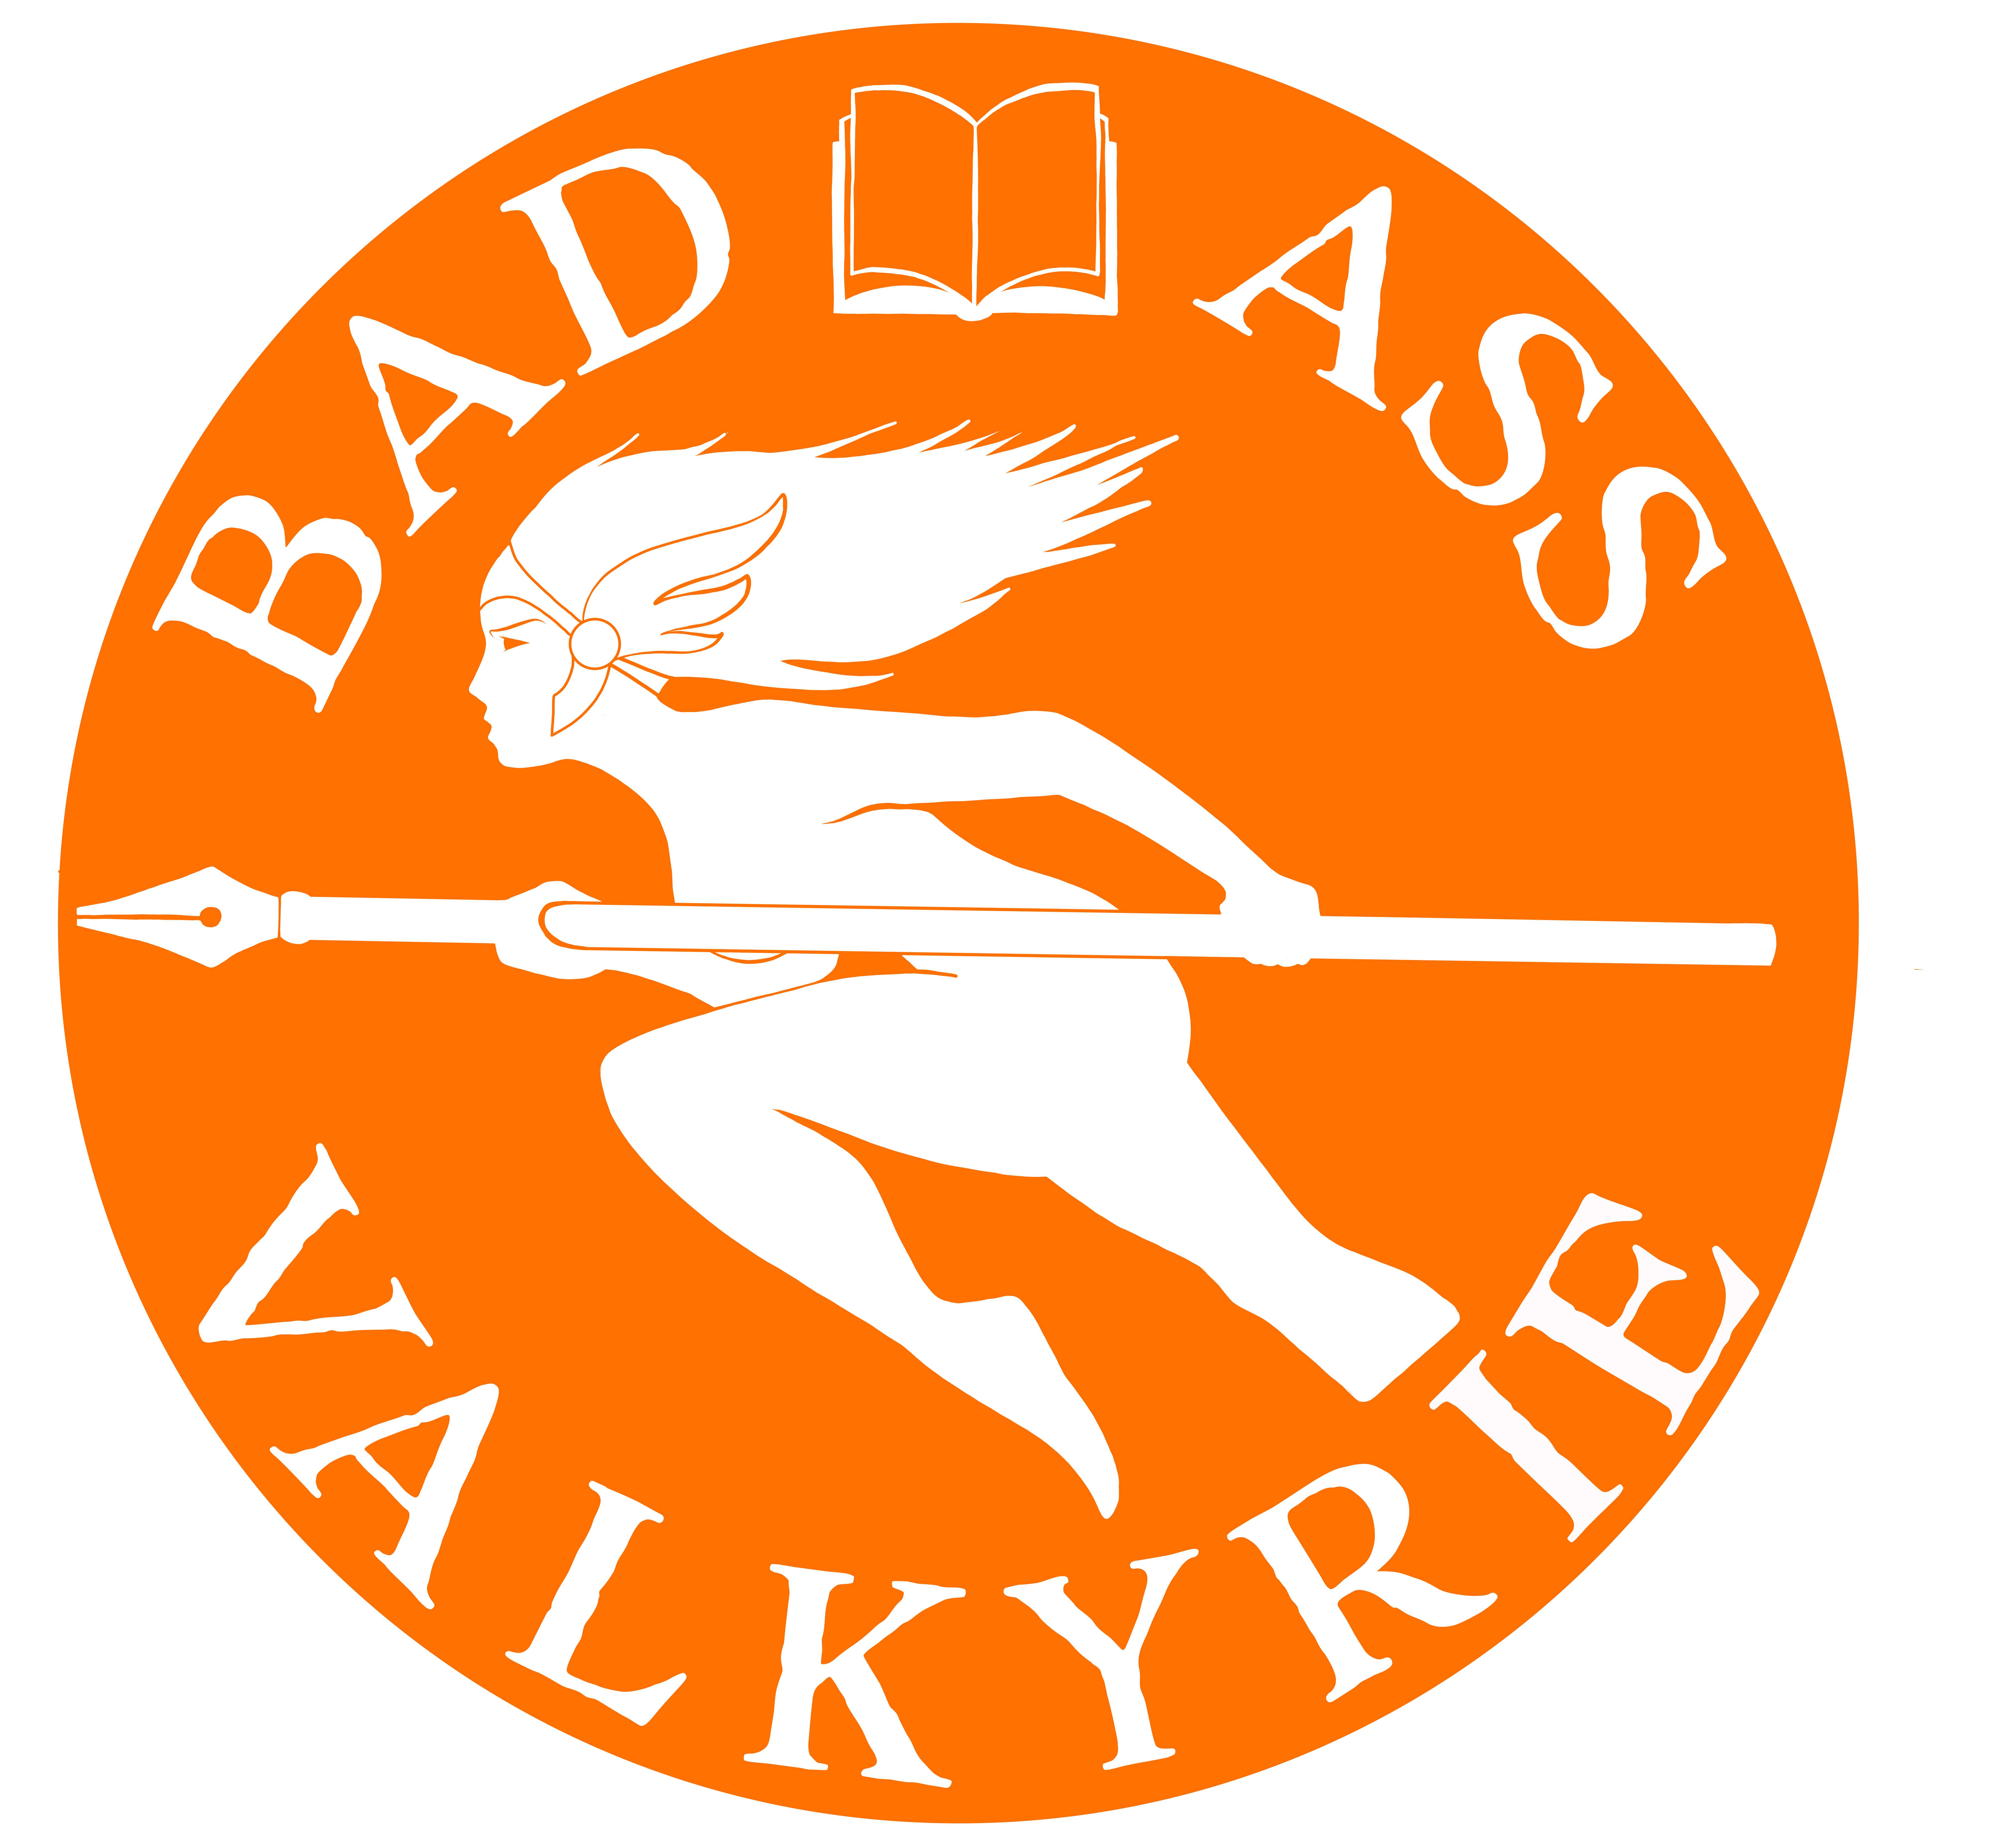 The Badass Valkyrie